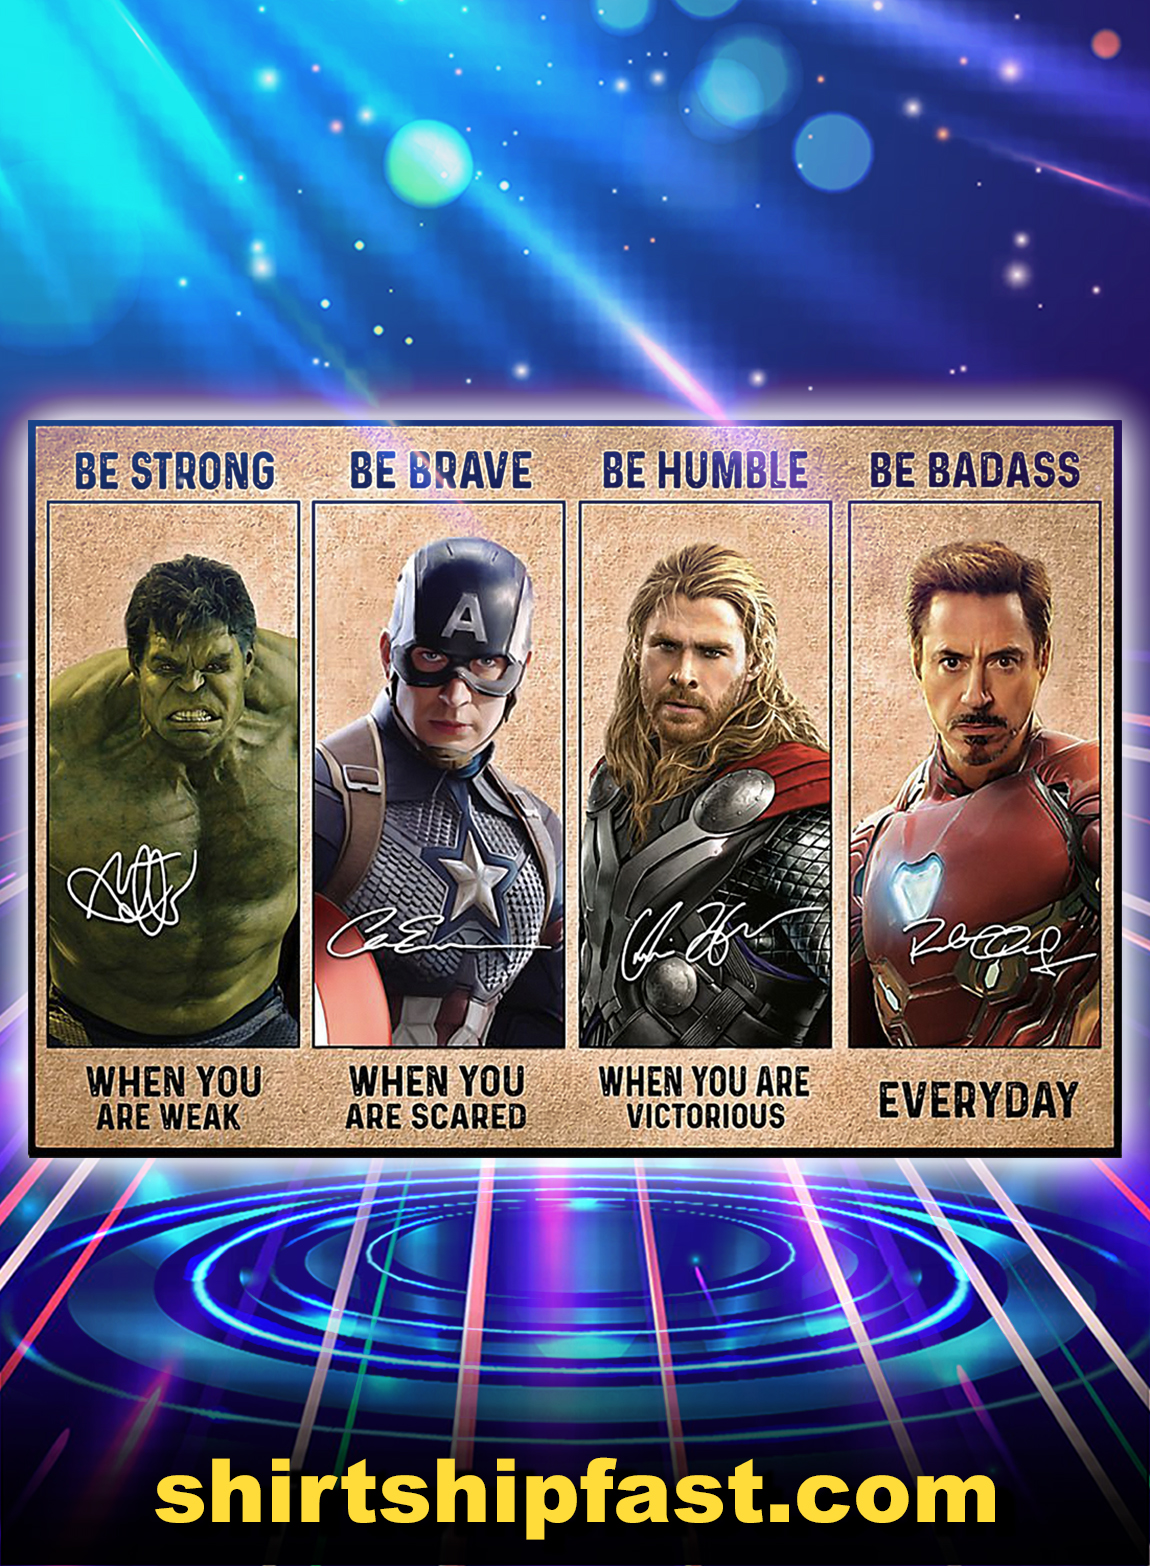 Be strong be brave be humble be badass avengers poster - A2